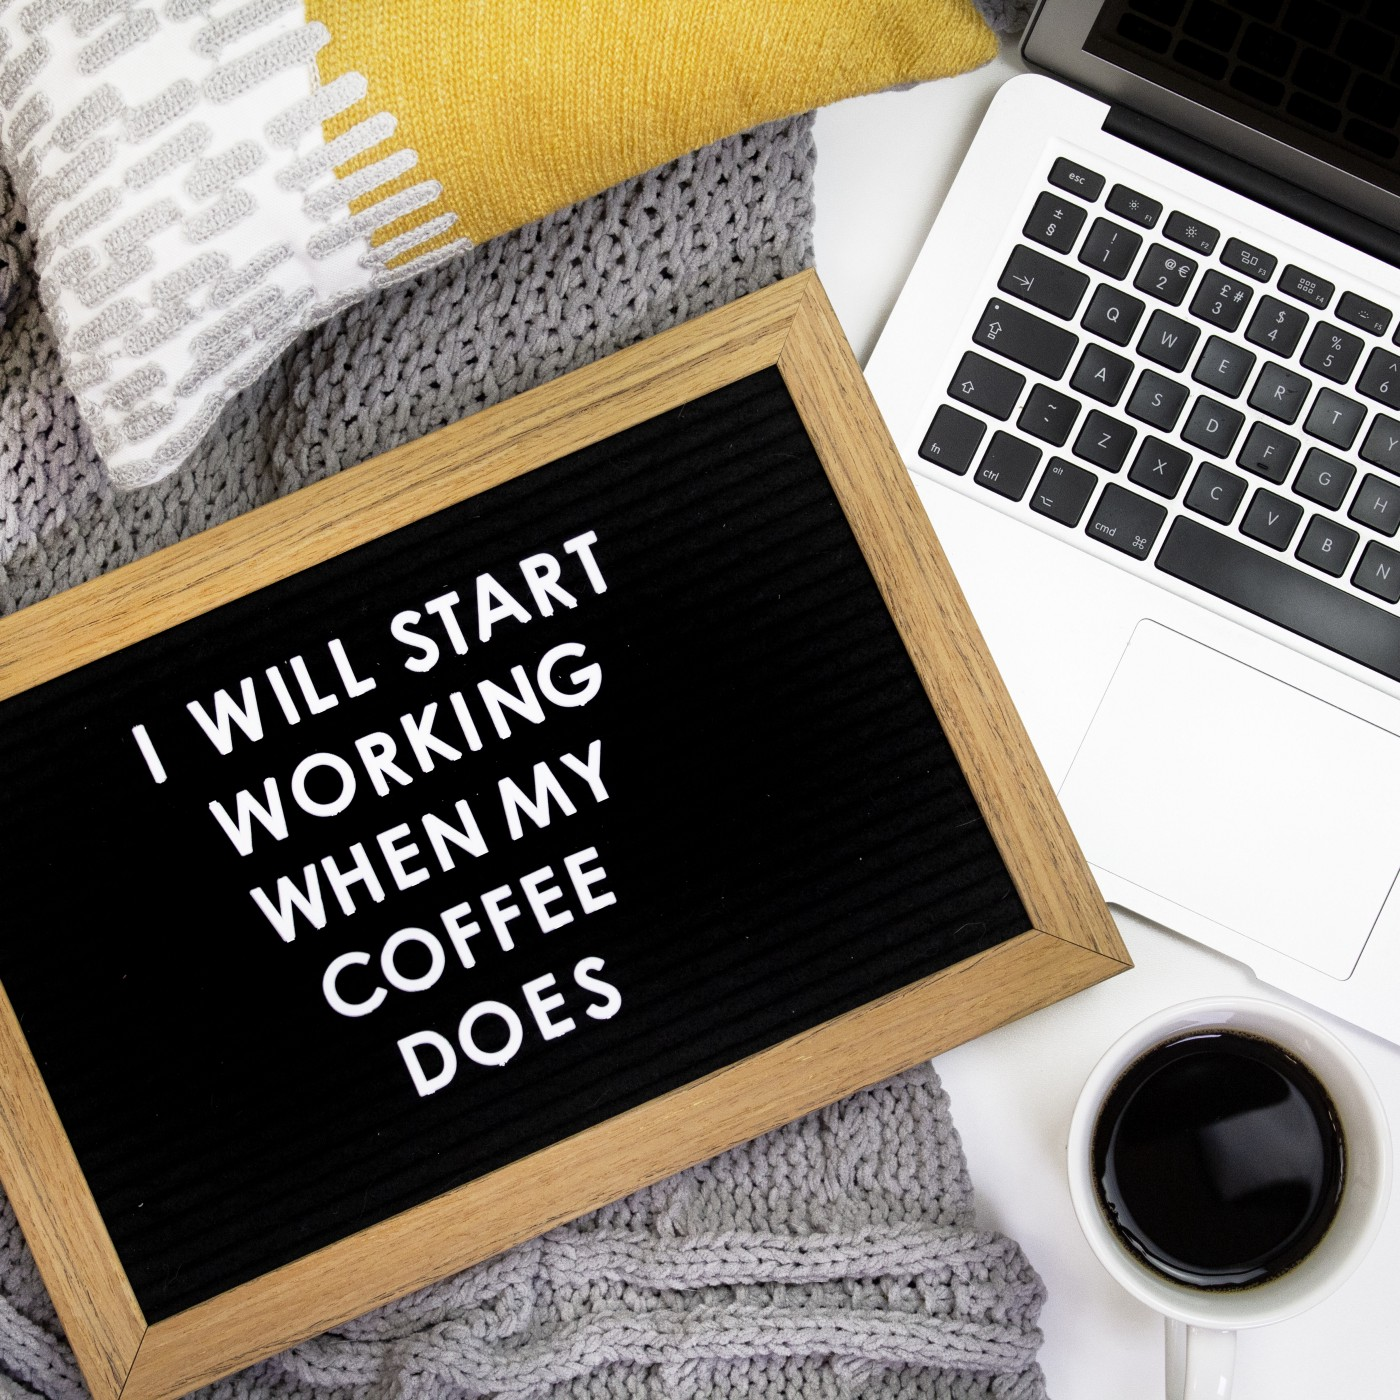 """I will start working when my coffee does"""